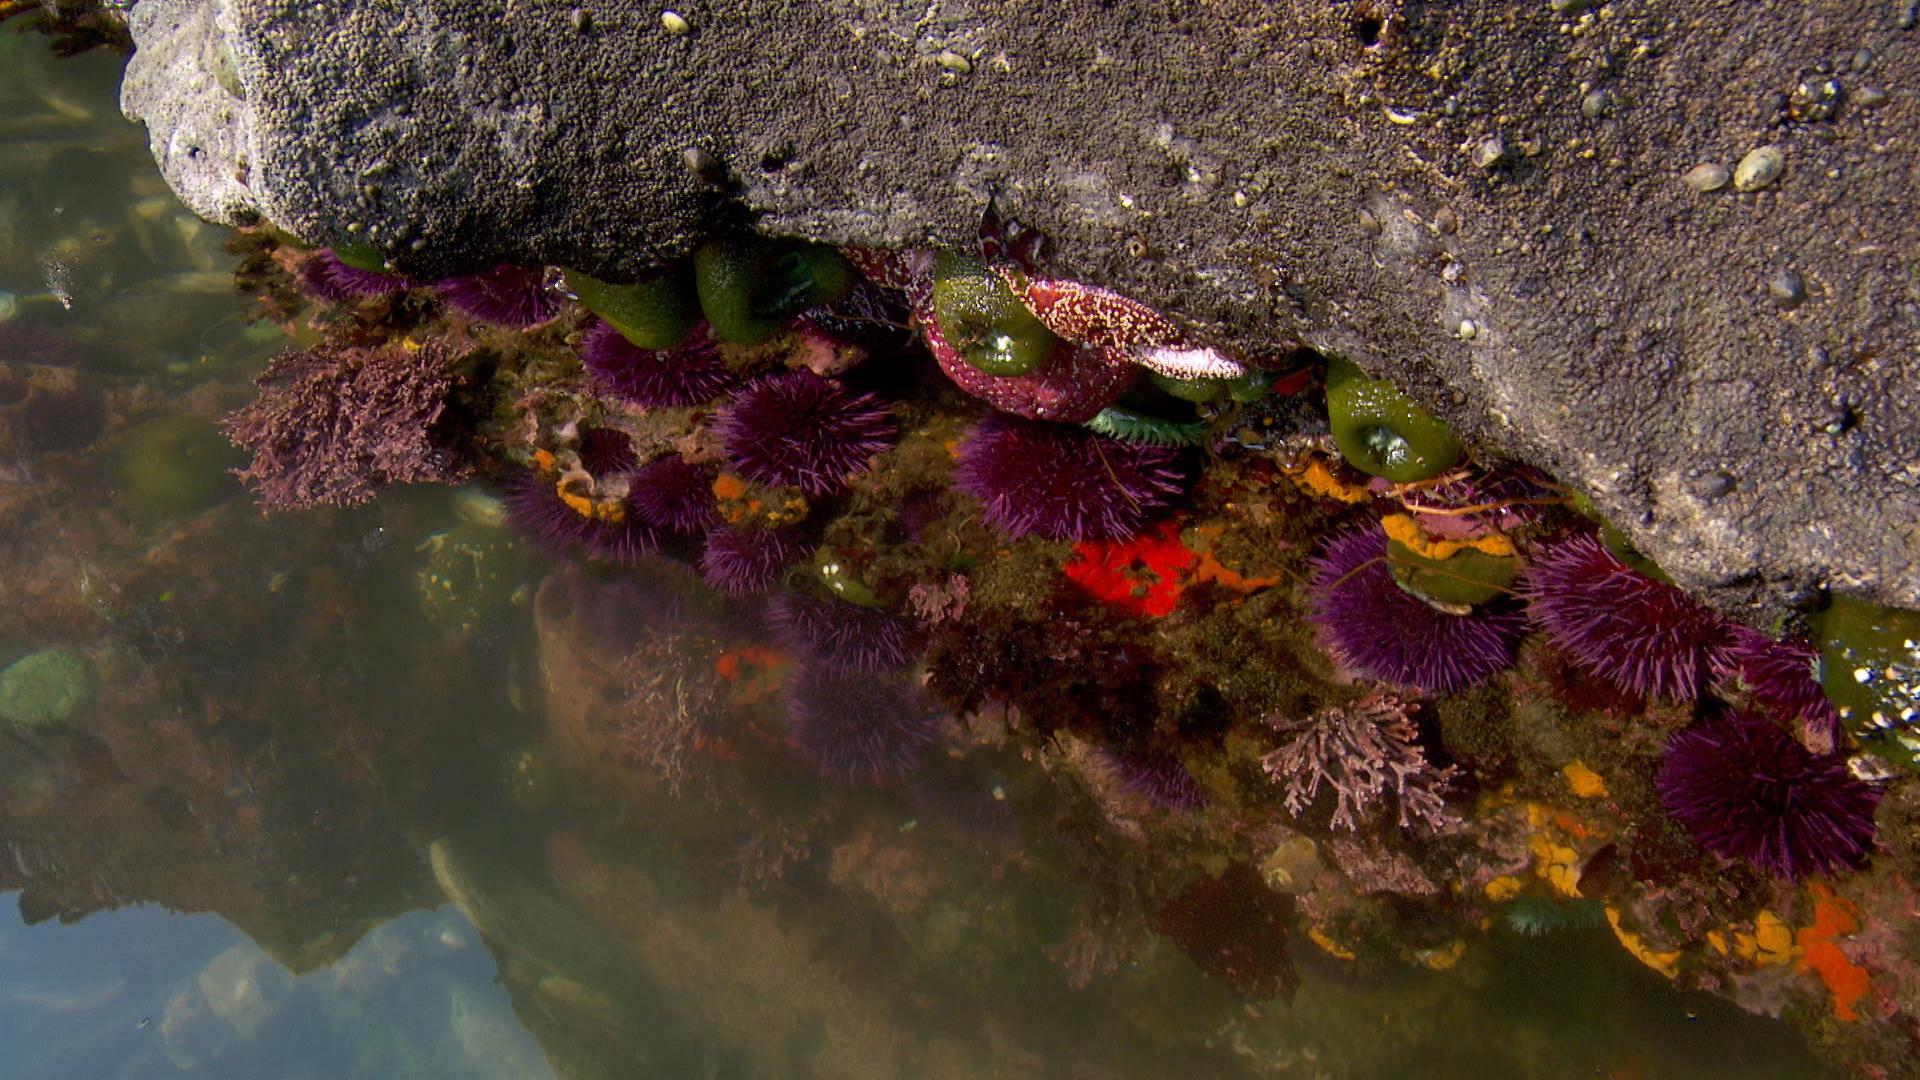 Southern Oregon's Cape Arago has some of the most scenic tide pools anywhere.